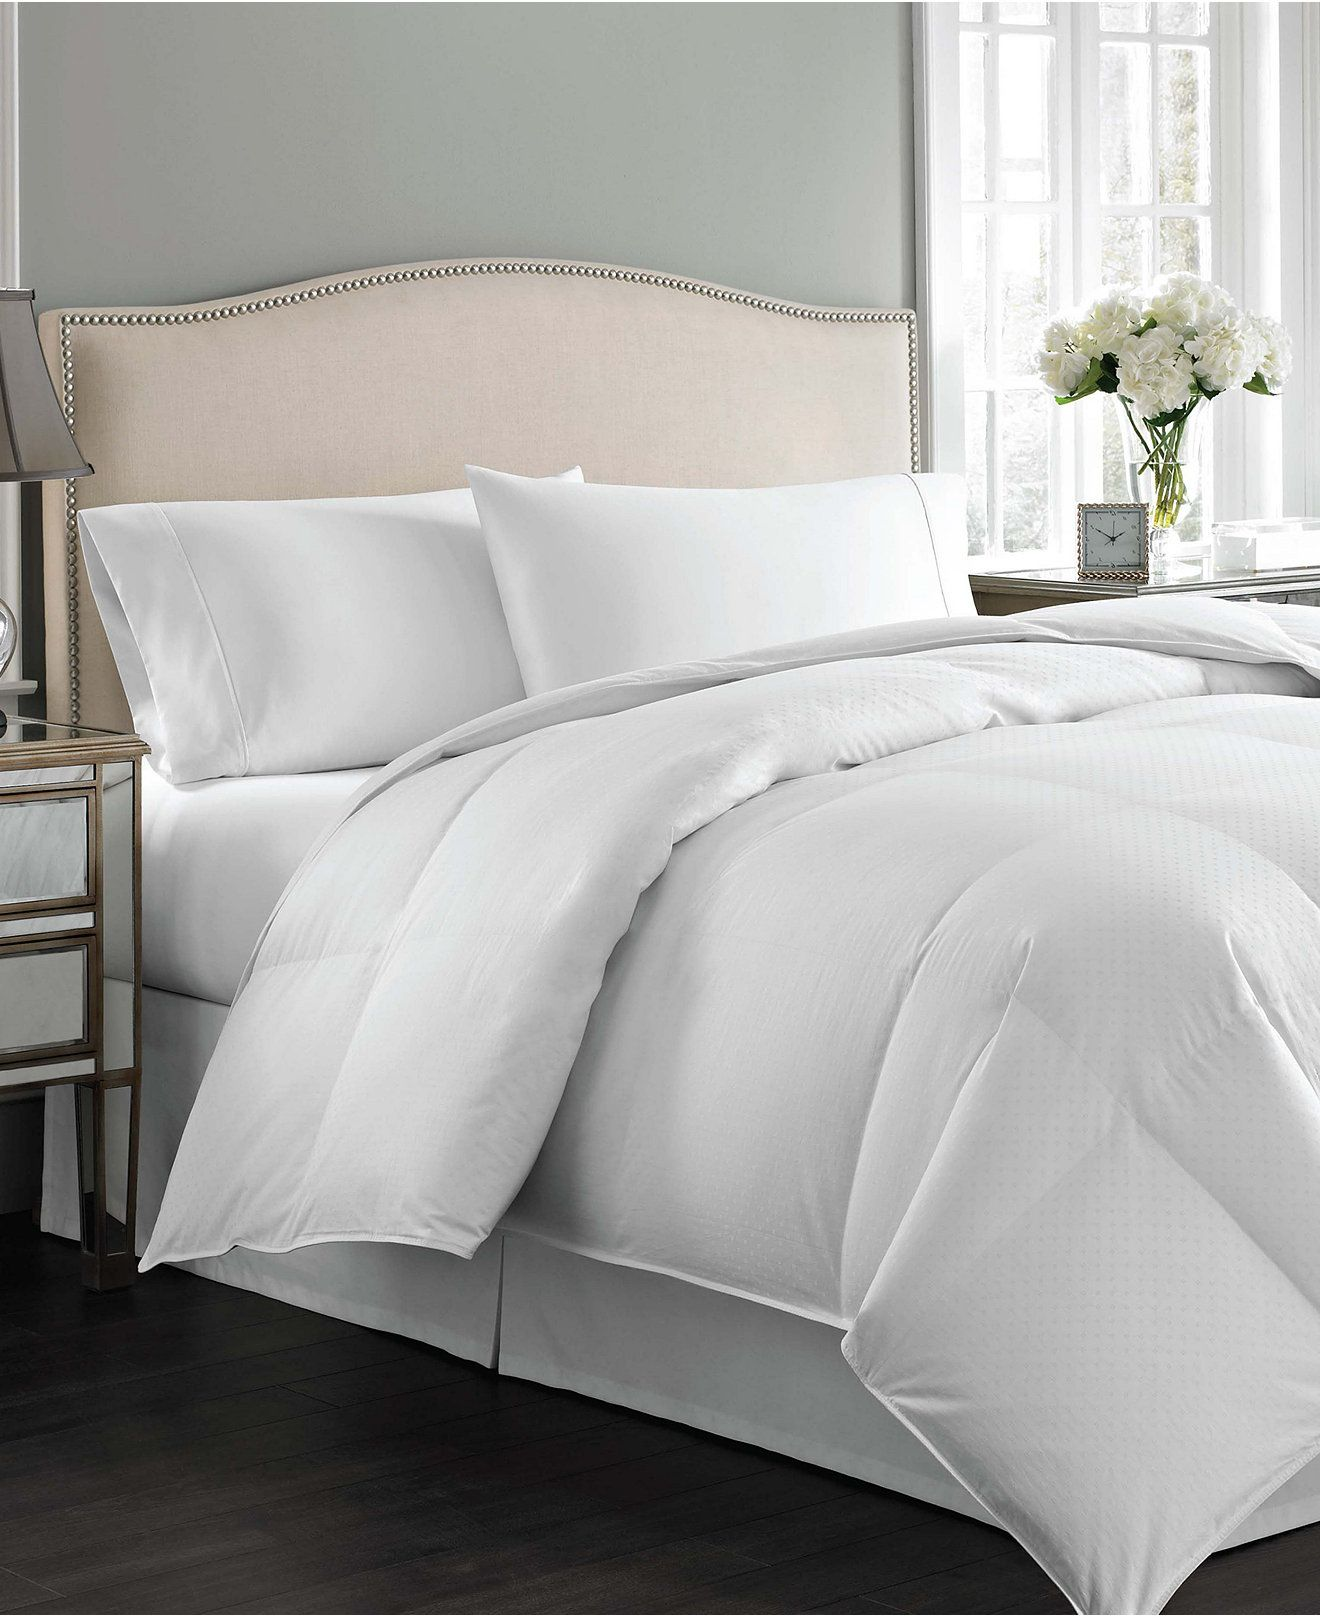 Charter Club Closeout Vail Level 3 European White Down Comforters Medium Warmth Hypoallergenic Ultraclean Down Created For Macy S Reviews Comforters B White Down Comforter Down Comforter Bedding Down Comforter